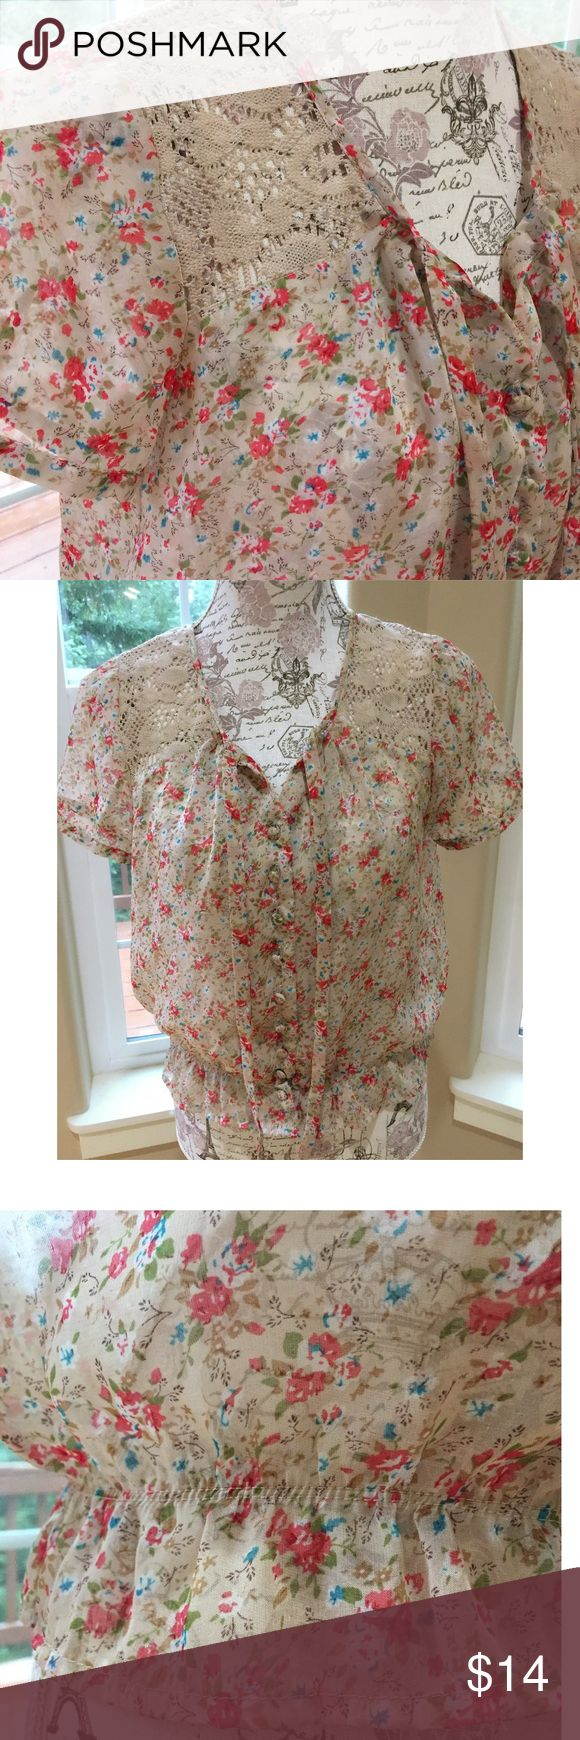 XXI Floral Chiffon & Lace Crop Top S In excellent pre owned condition. Absolutely no flaws. Somewhat sheer. Definitely needs a bralette or Cami underneath. Small Forever 21 Tops Crop Tops